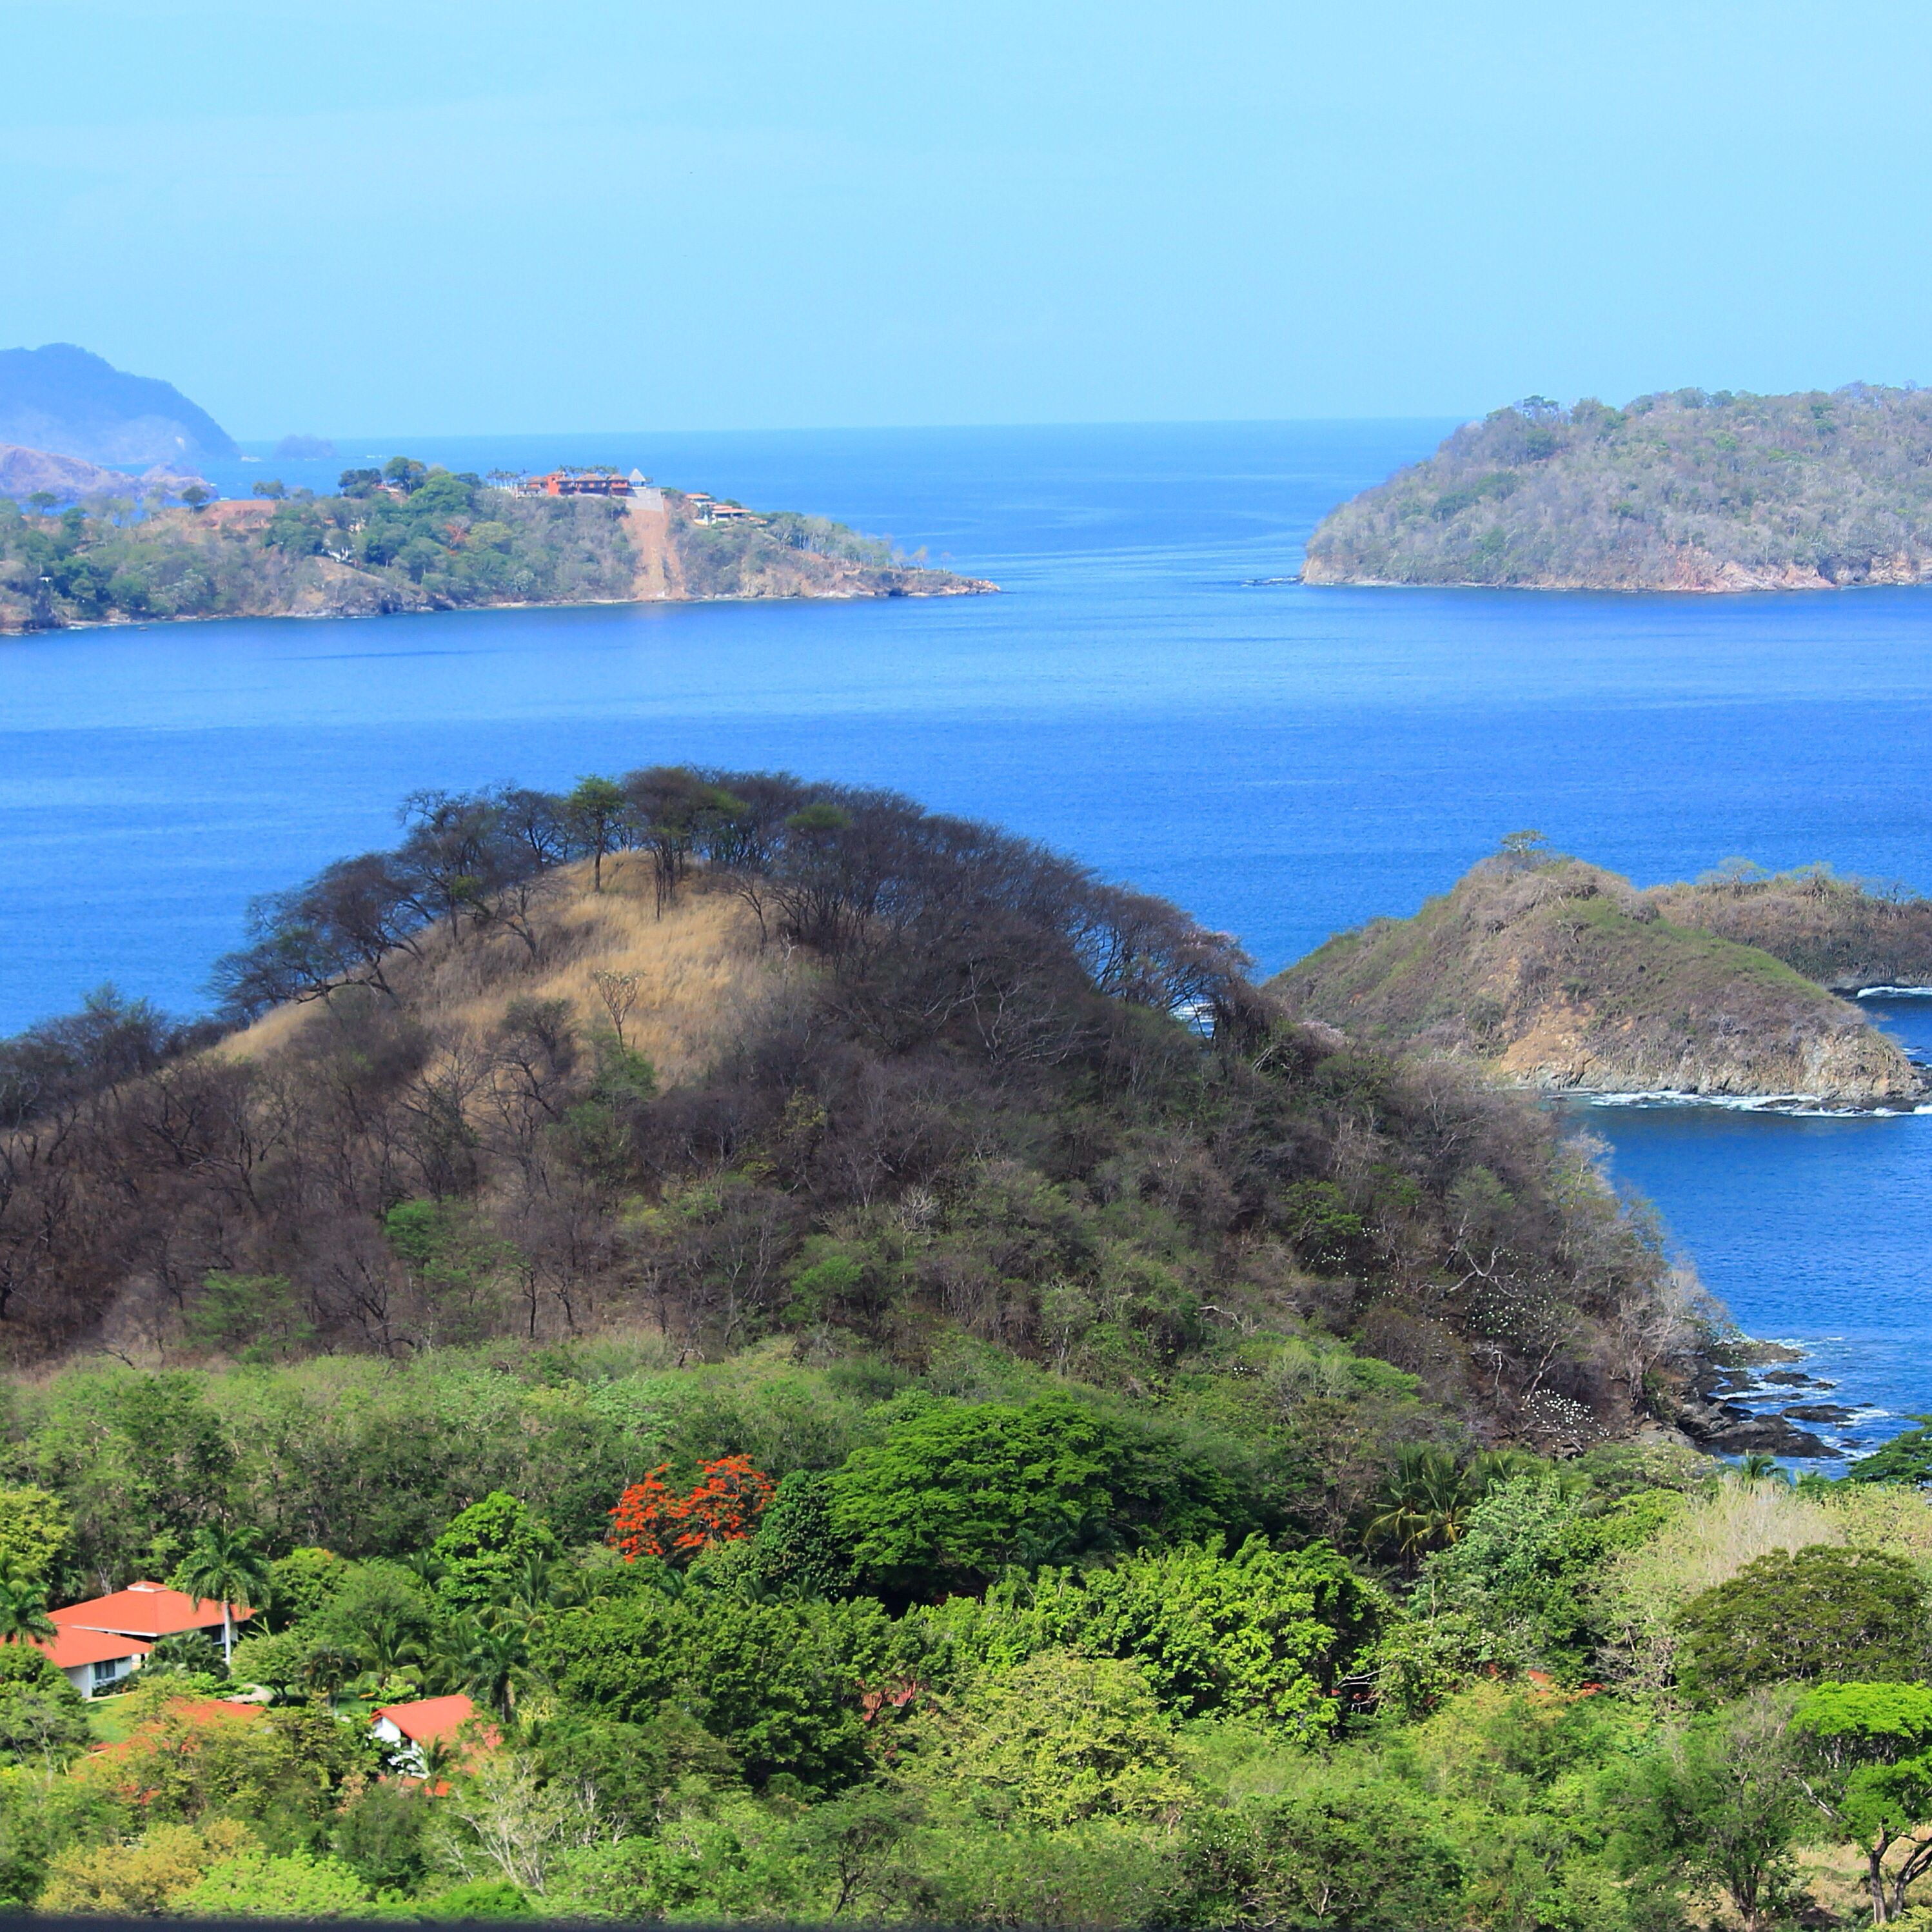 Imagine...enjoying this view while eating breakfast and planning your days adventures in Costa Rica